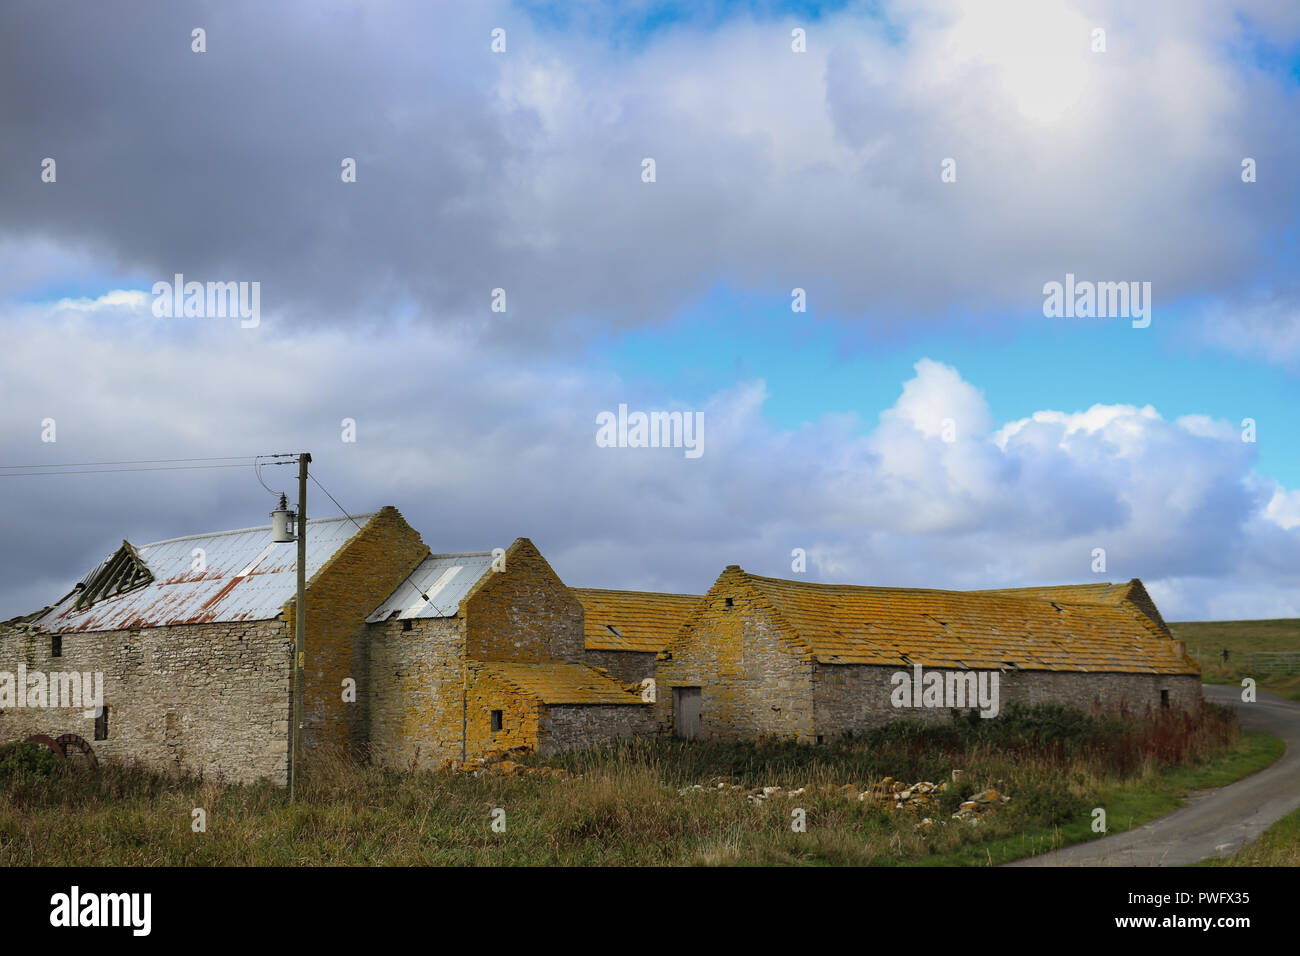 Old stone barns with roofs covered in yellow lichen, under a blue sky with billowing white clouds, green grass, on Rousay Island, Orkney, Scotland - Stock Image